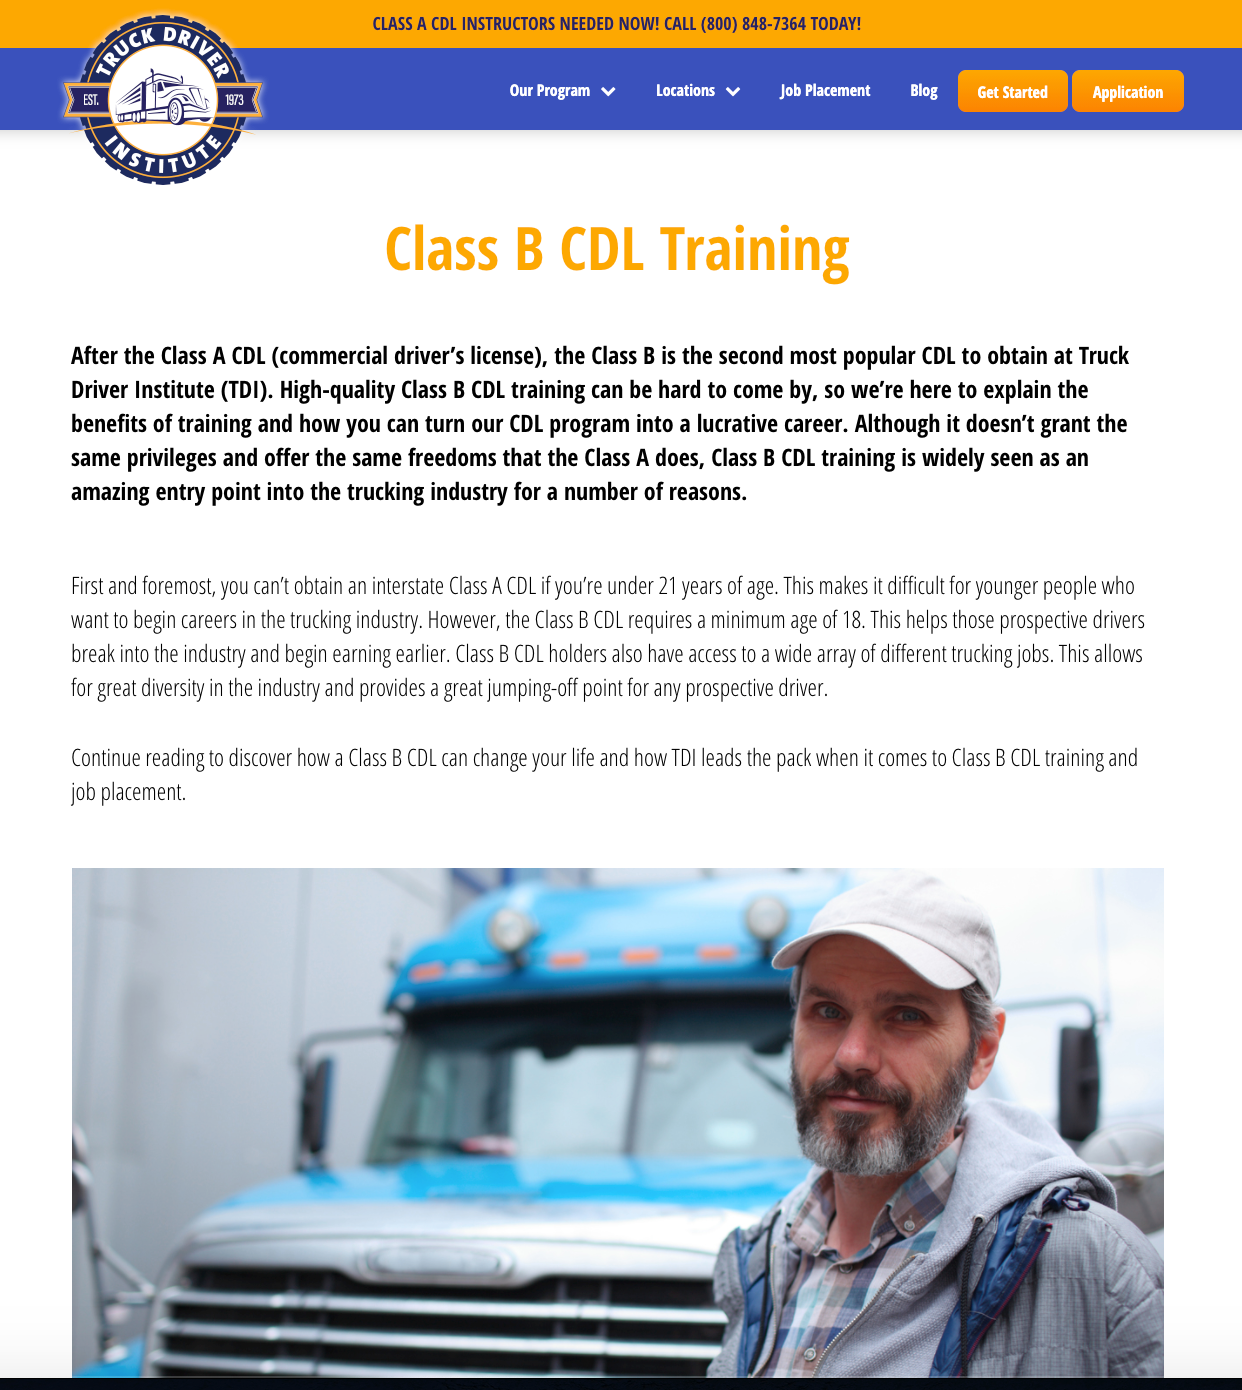 Truck Driver Institute service page example